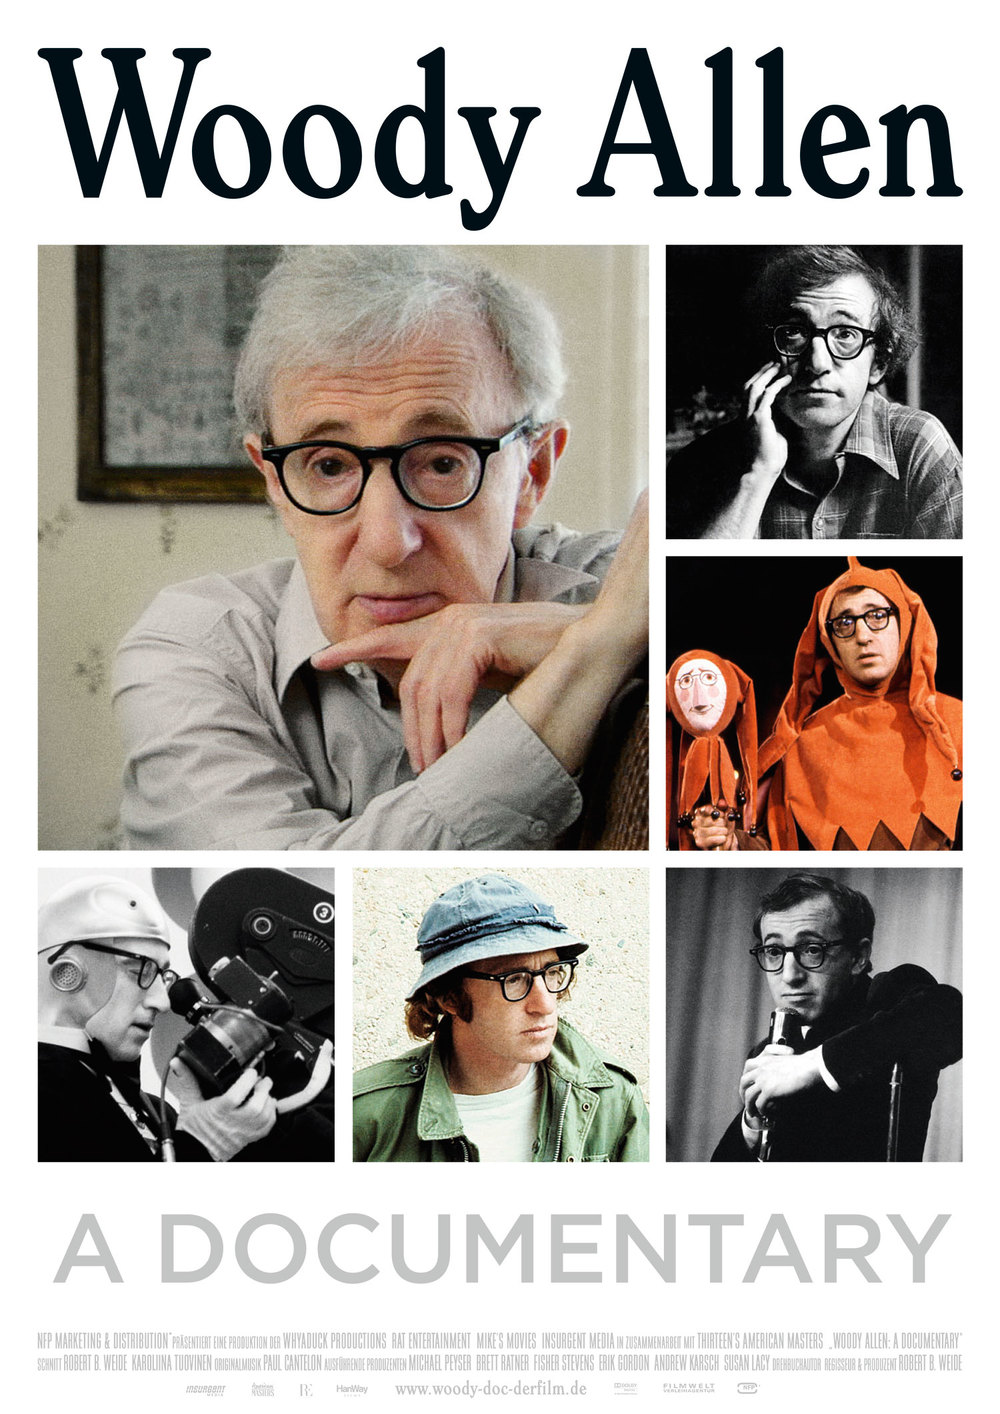 "NFP*<a href=""/woody-allen"">→</a><strong>Adaption</strong>"